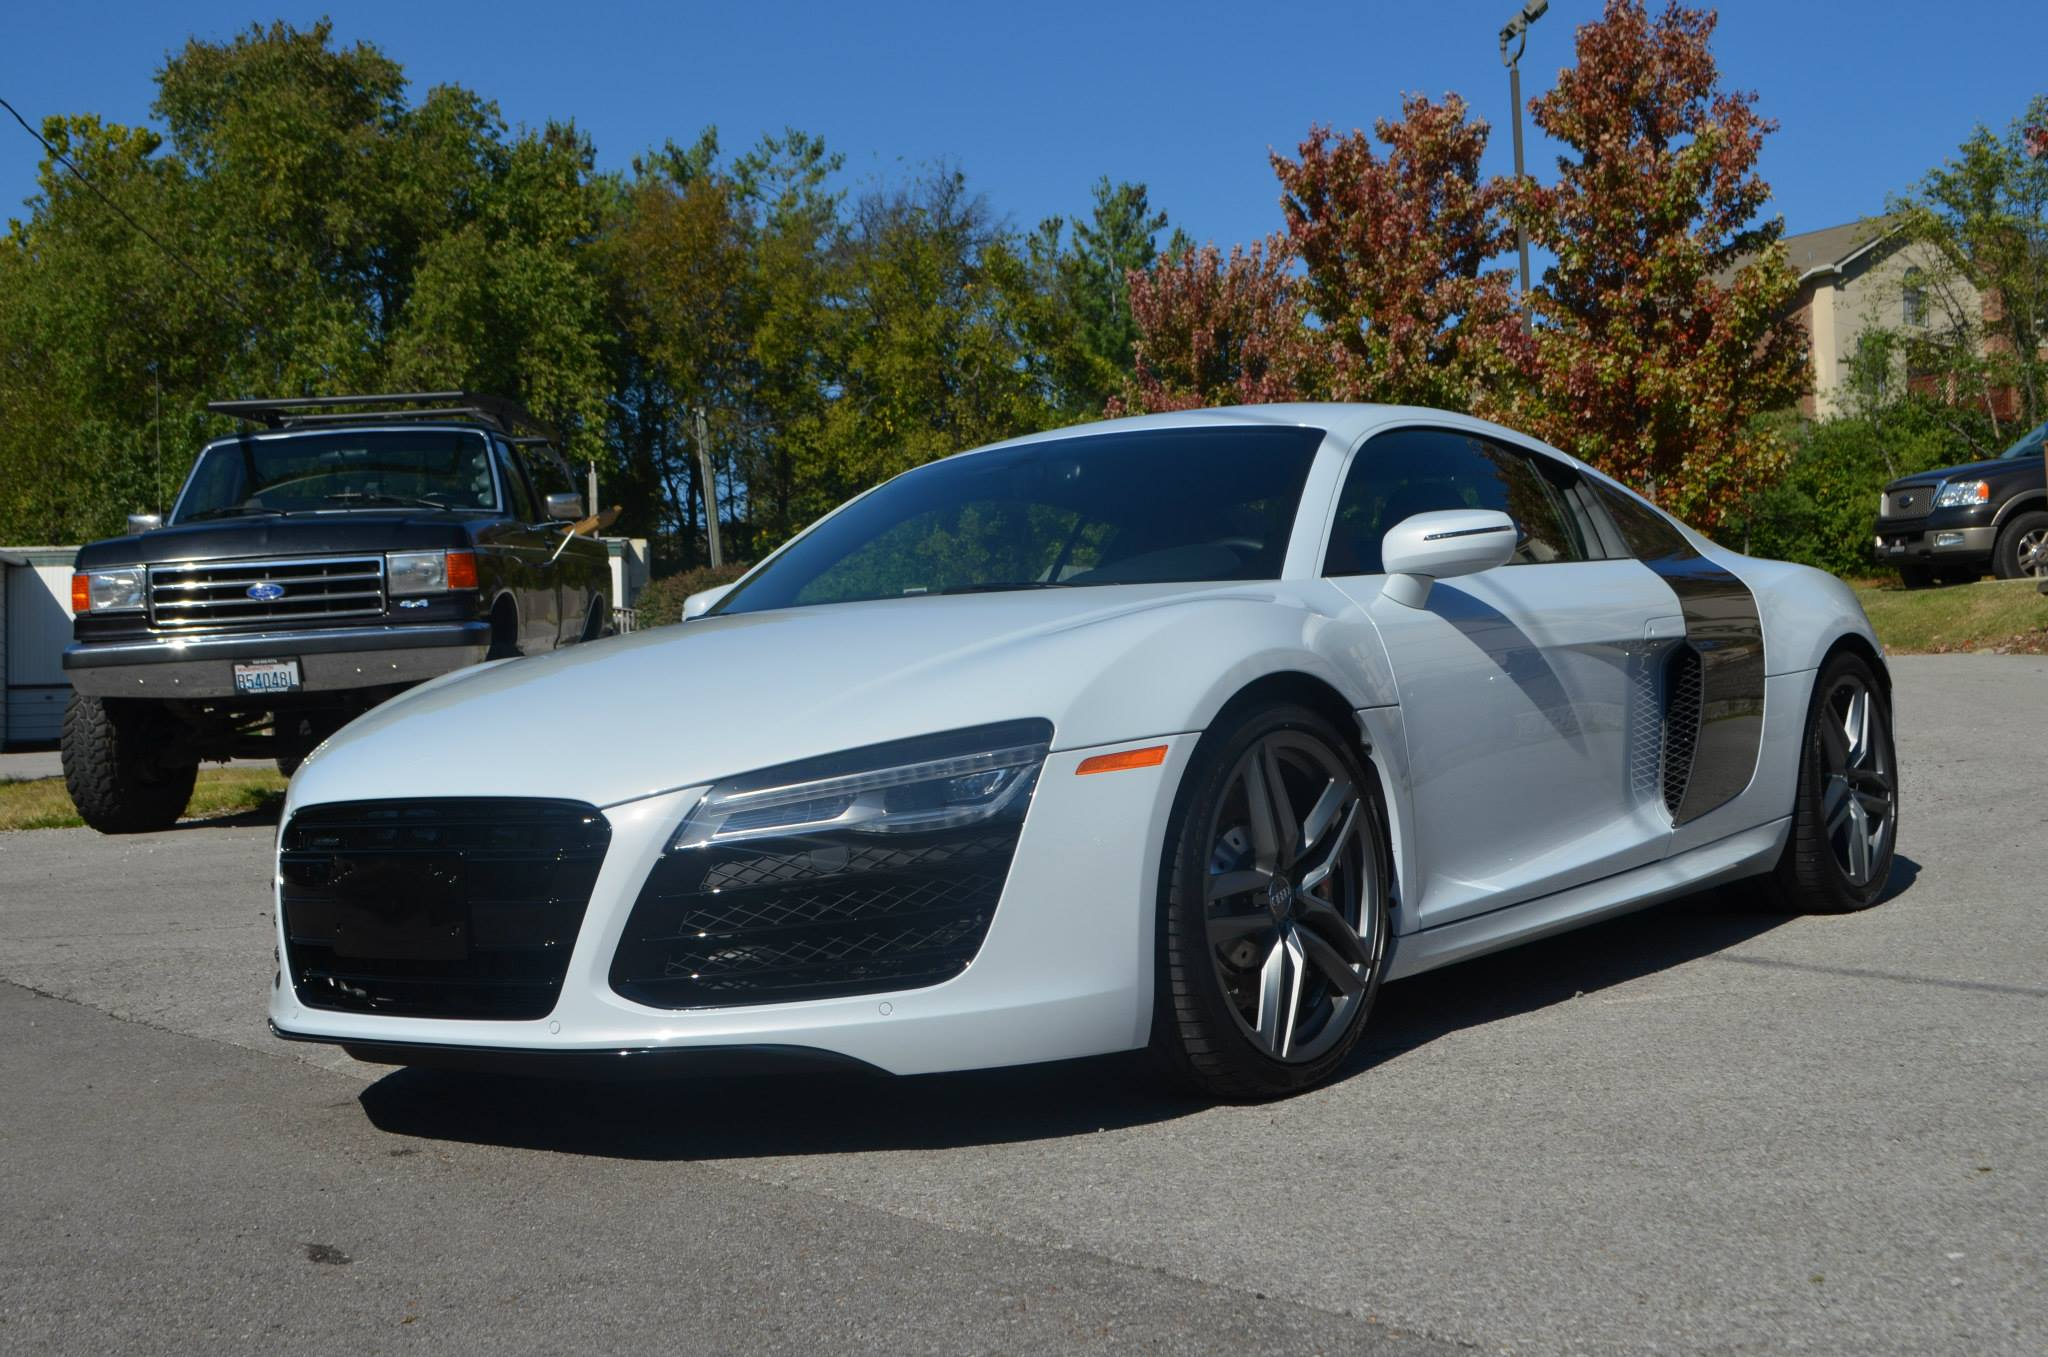 Audi R8 V10 Manual: Track Pack PPF, CQ FINEST Reserve